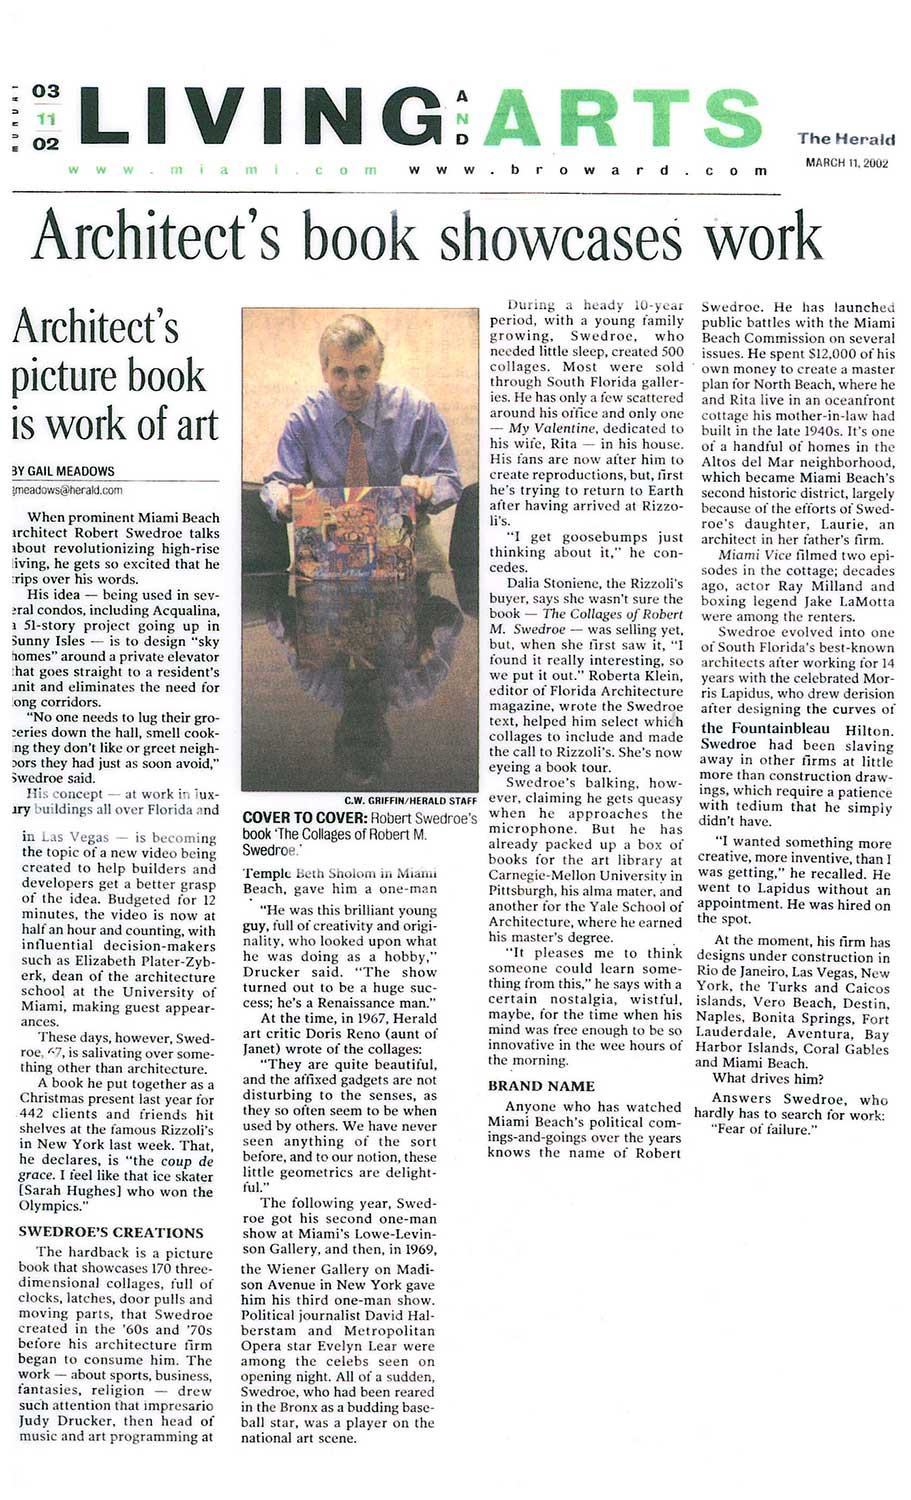 news_The_Herald._Architect's_book_showcases_work_3.11.02